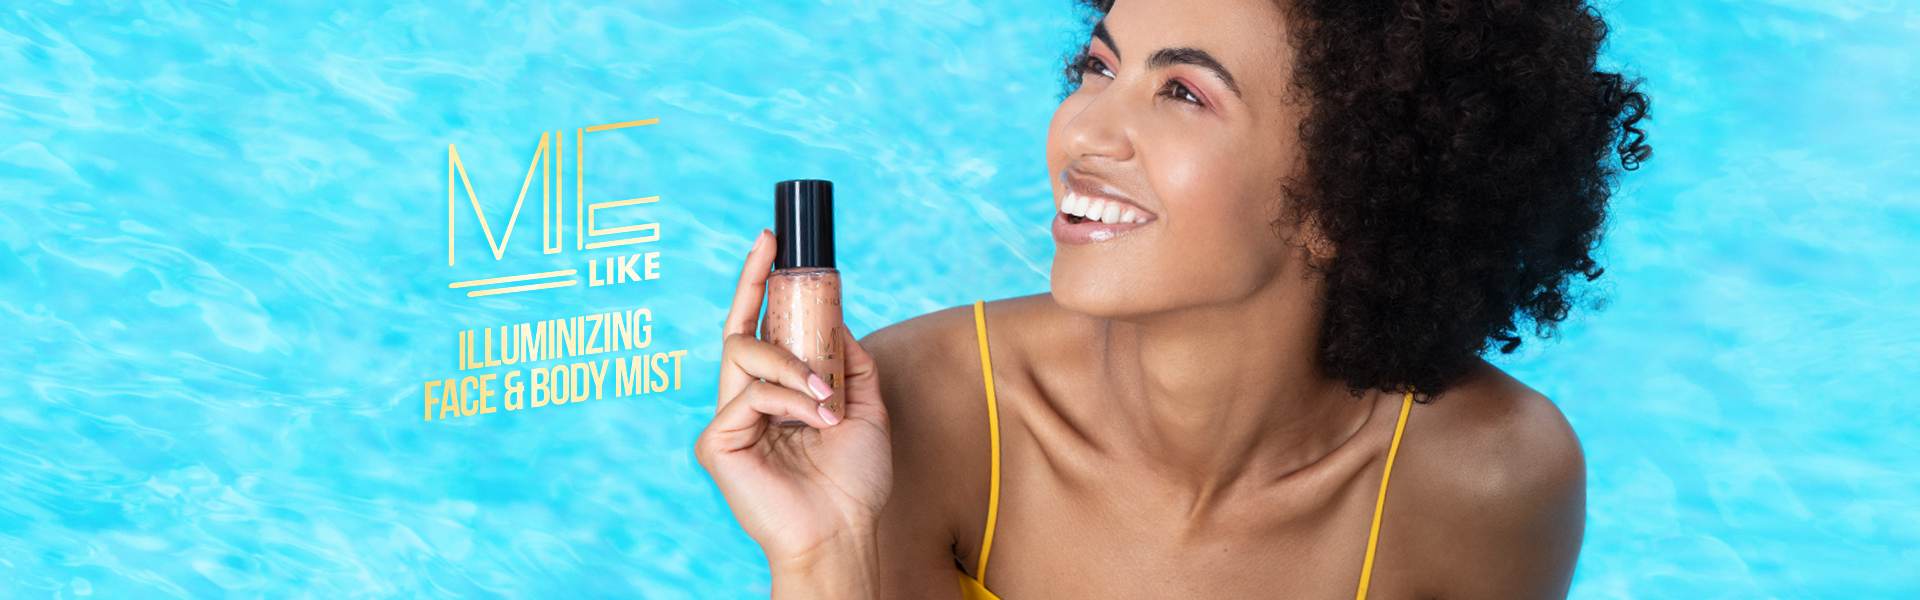 19-07-26-newsletter---me-like-illuminizing-face-body-mist-multi